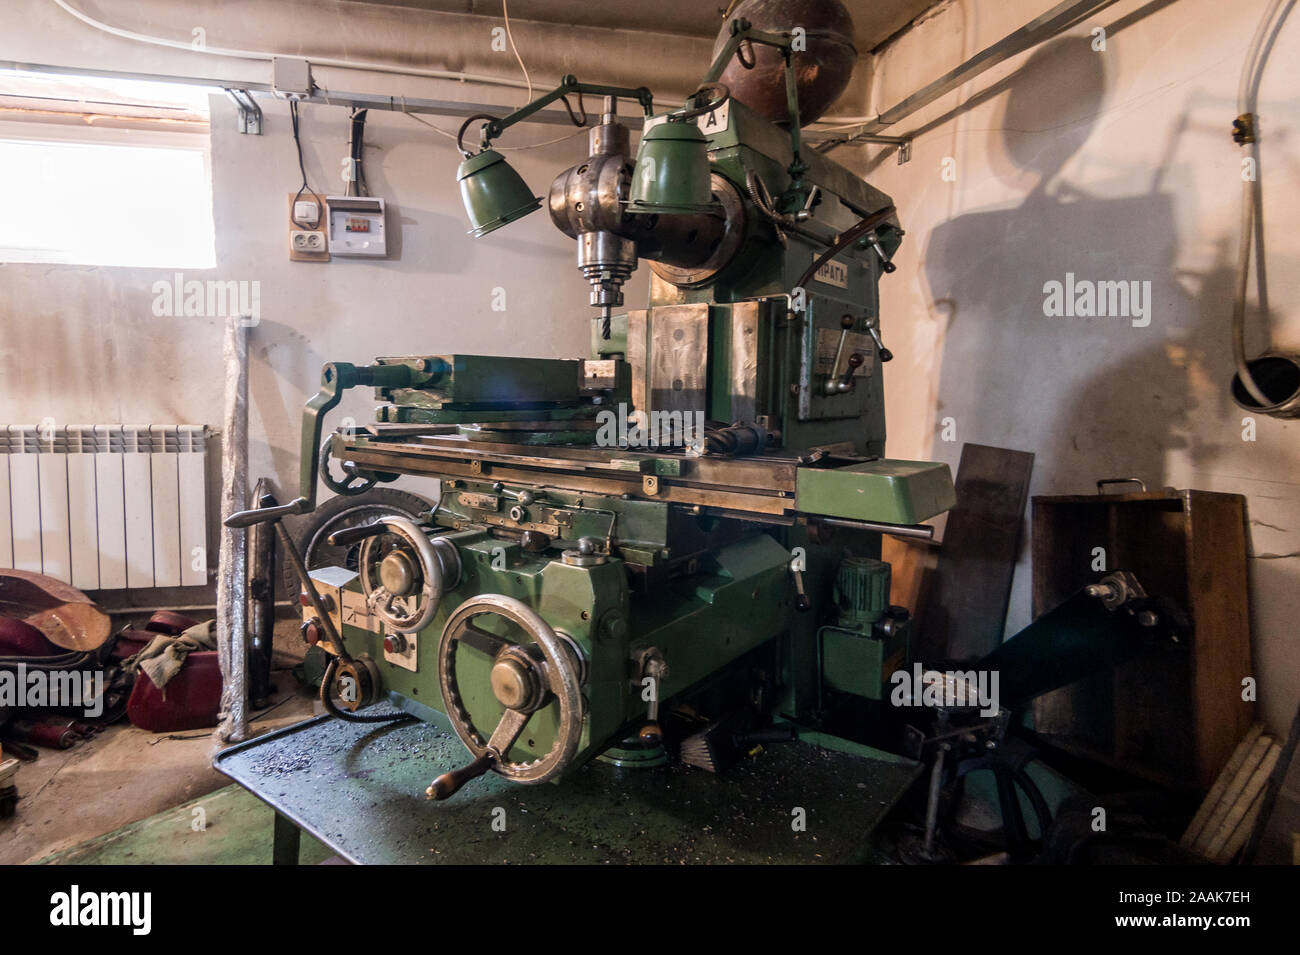 Russia Moscow July 06 2019 Interior Machines In Garage Workshop Old Machinery Repair And Production Equipment Stock Photo Alamy